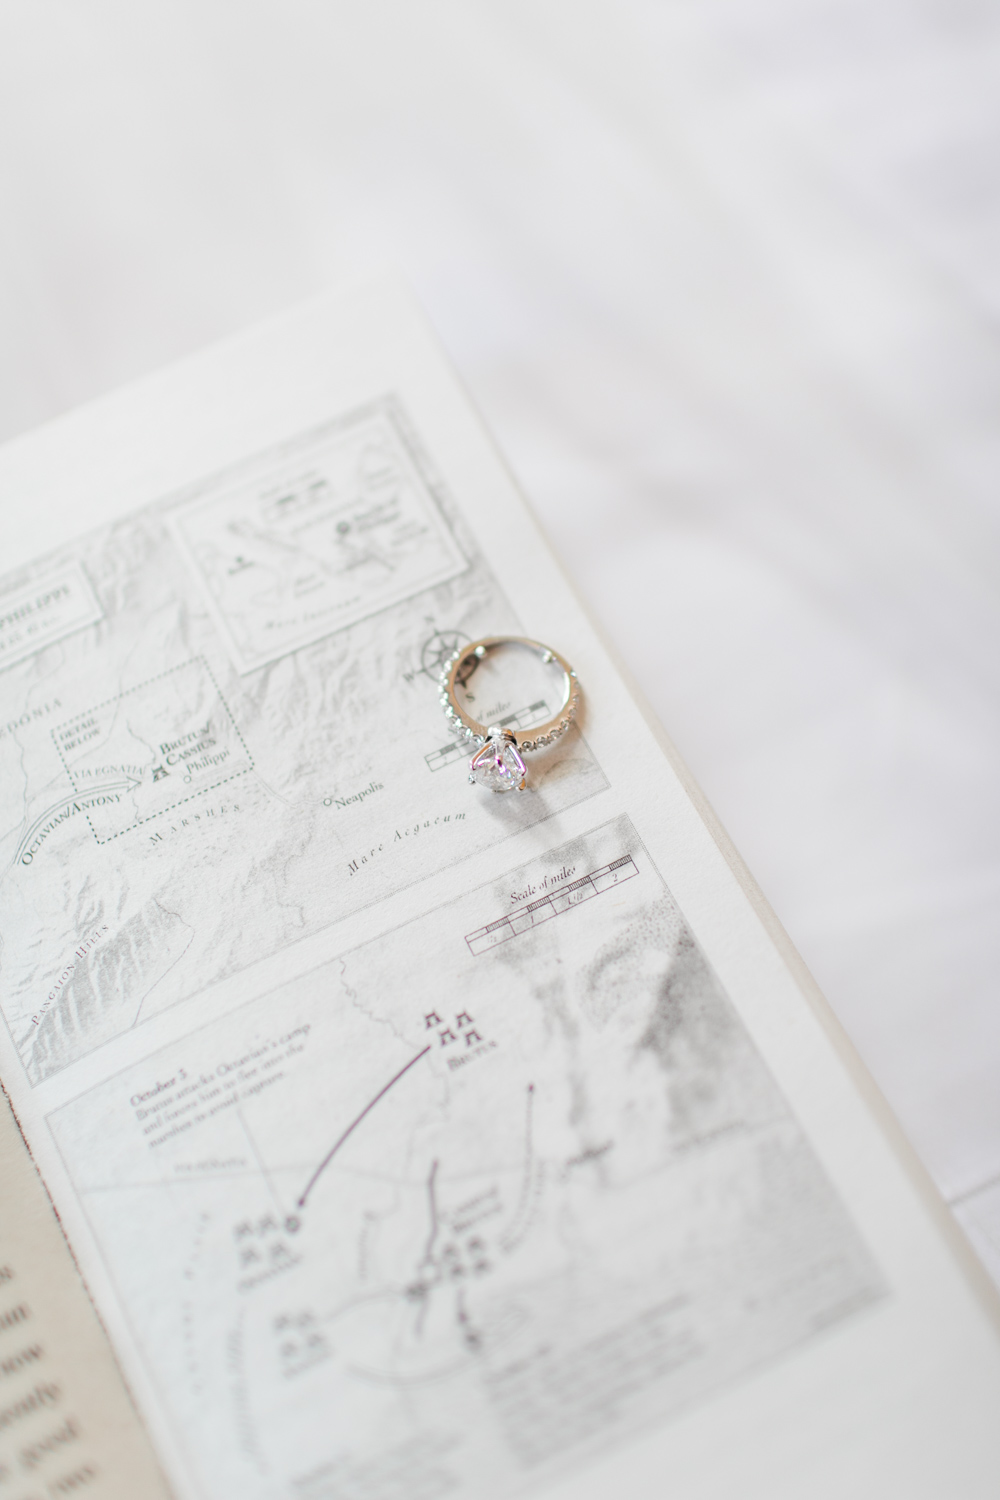 a white gold diamond ring on top of a map page in a book